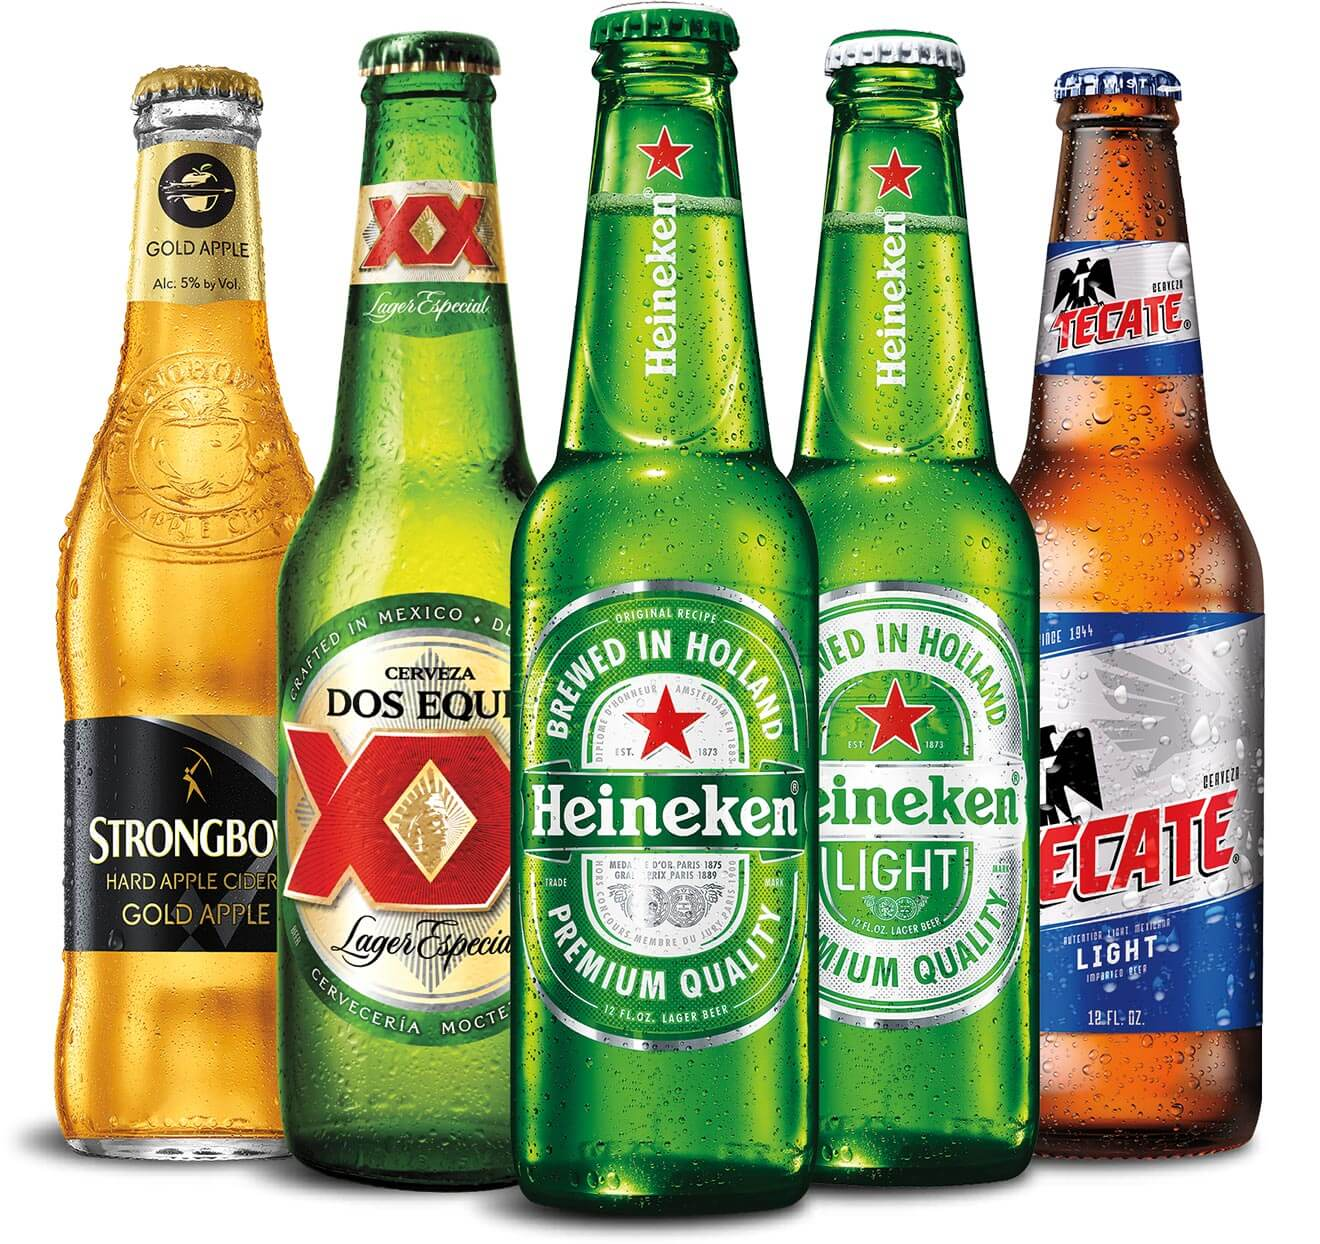 heineken brand value The value of brands white paper  white paper: the value of brands: evaluating heineken's global branding strategy tim glowa july 31, 2002 tim glowa is president of north country research.